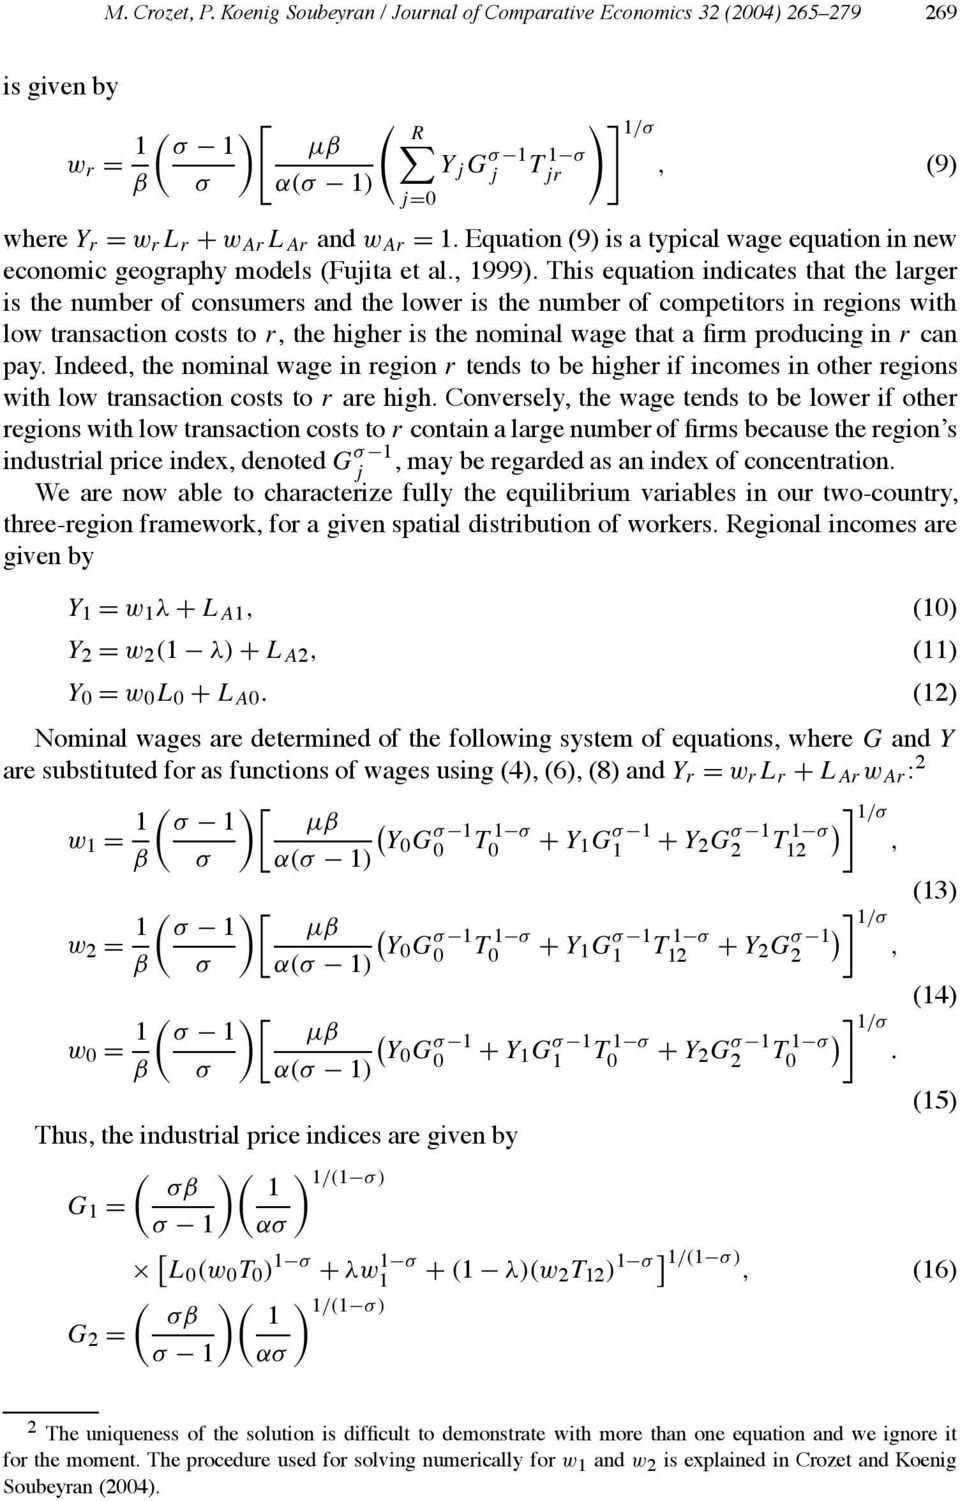 Equation (9) is a typical wage equation in new economic geography models (Fujita et al., 1999).